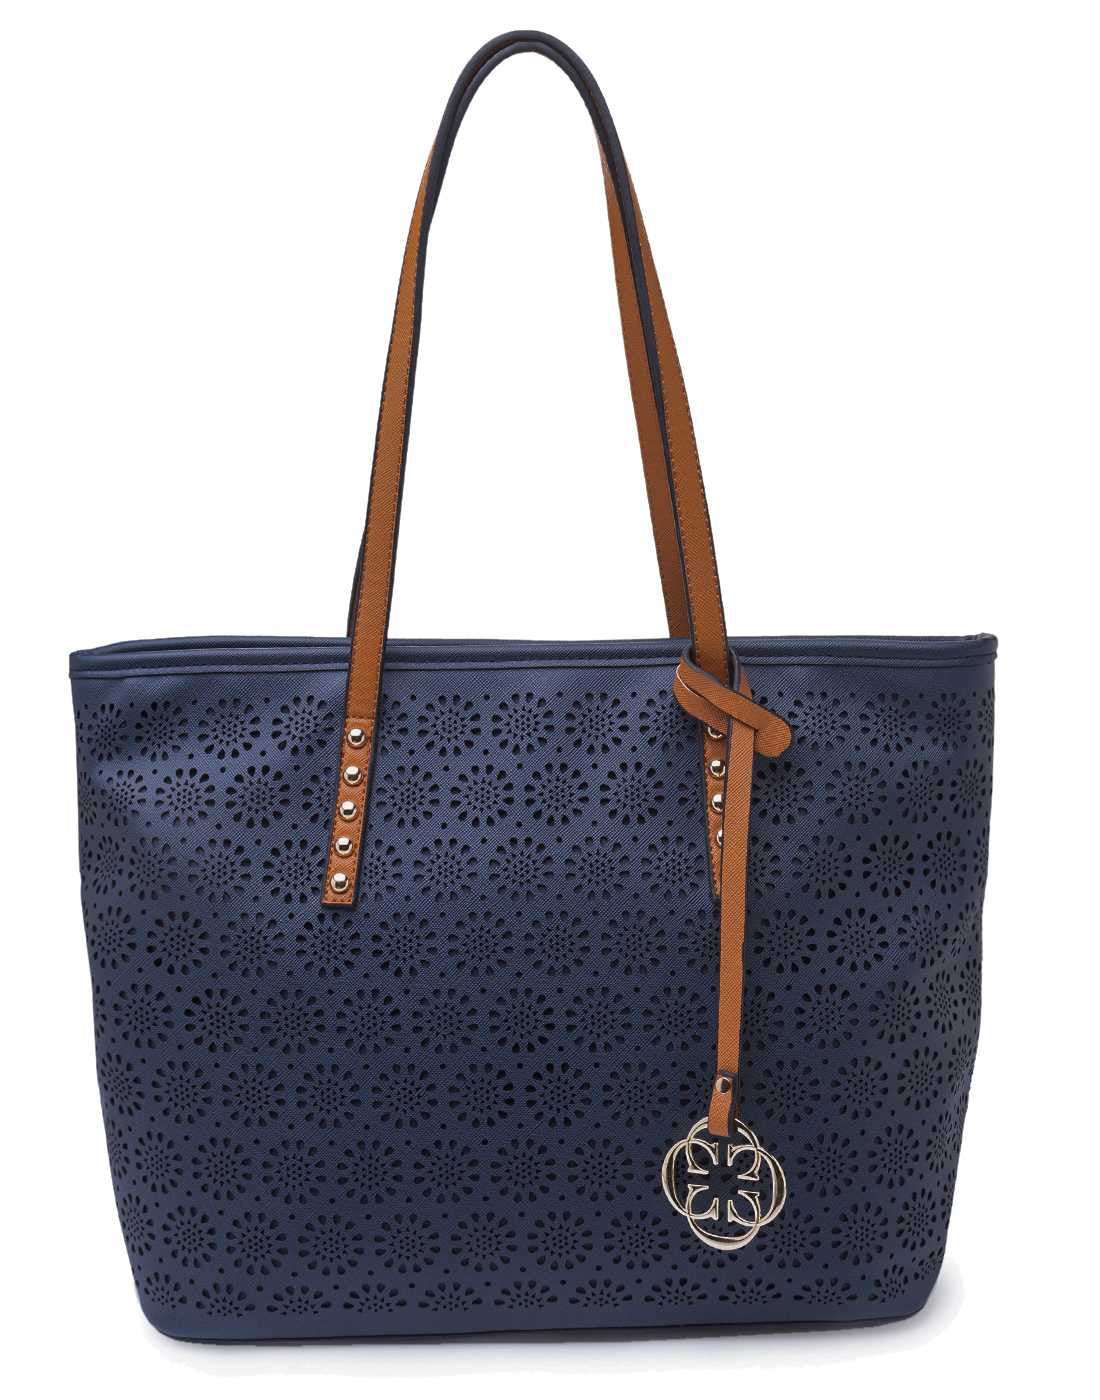 Navy Blue Tote with Laser Cut Detail